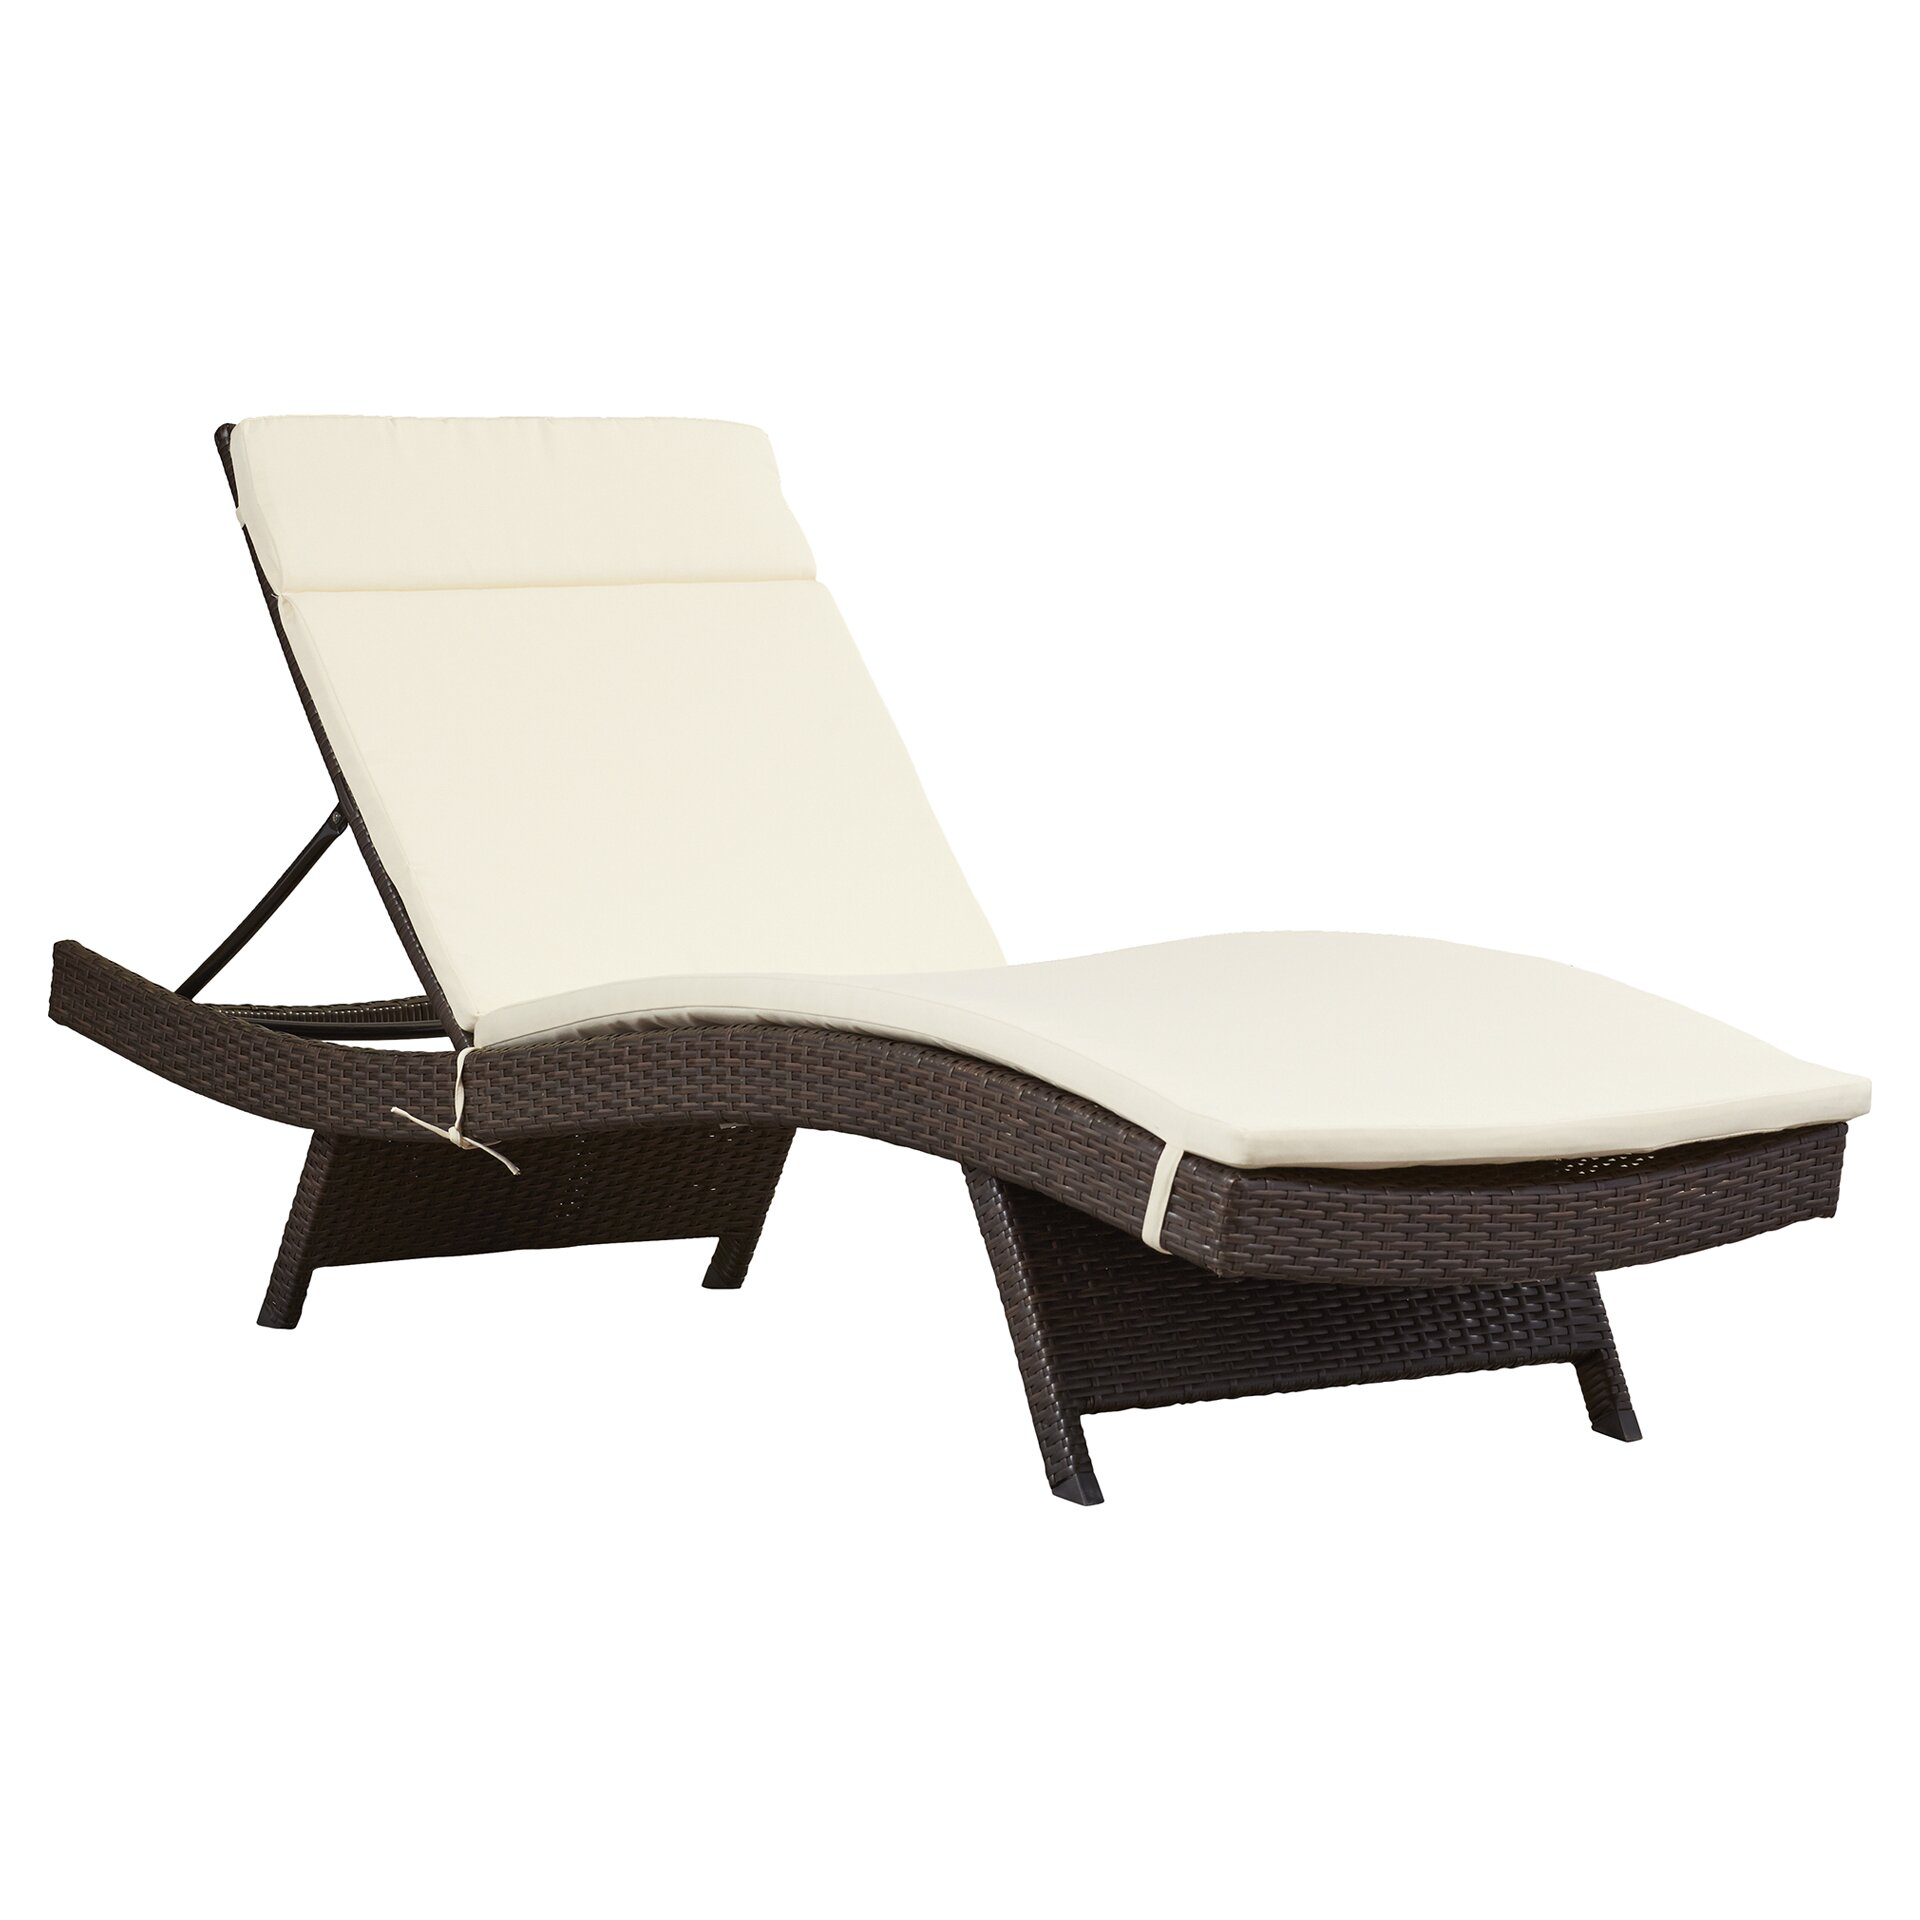 Brayden studio garry wicker adjustable chaise lounge with for Chaise cushion sale